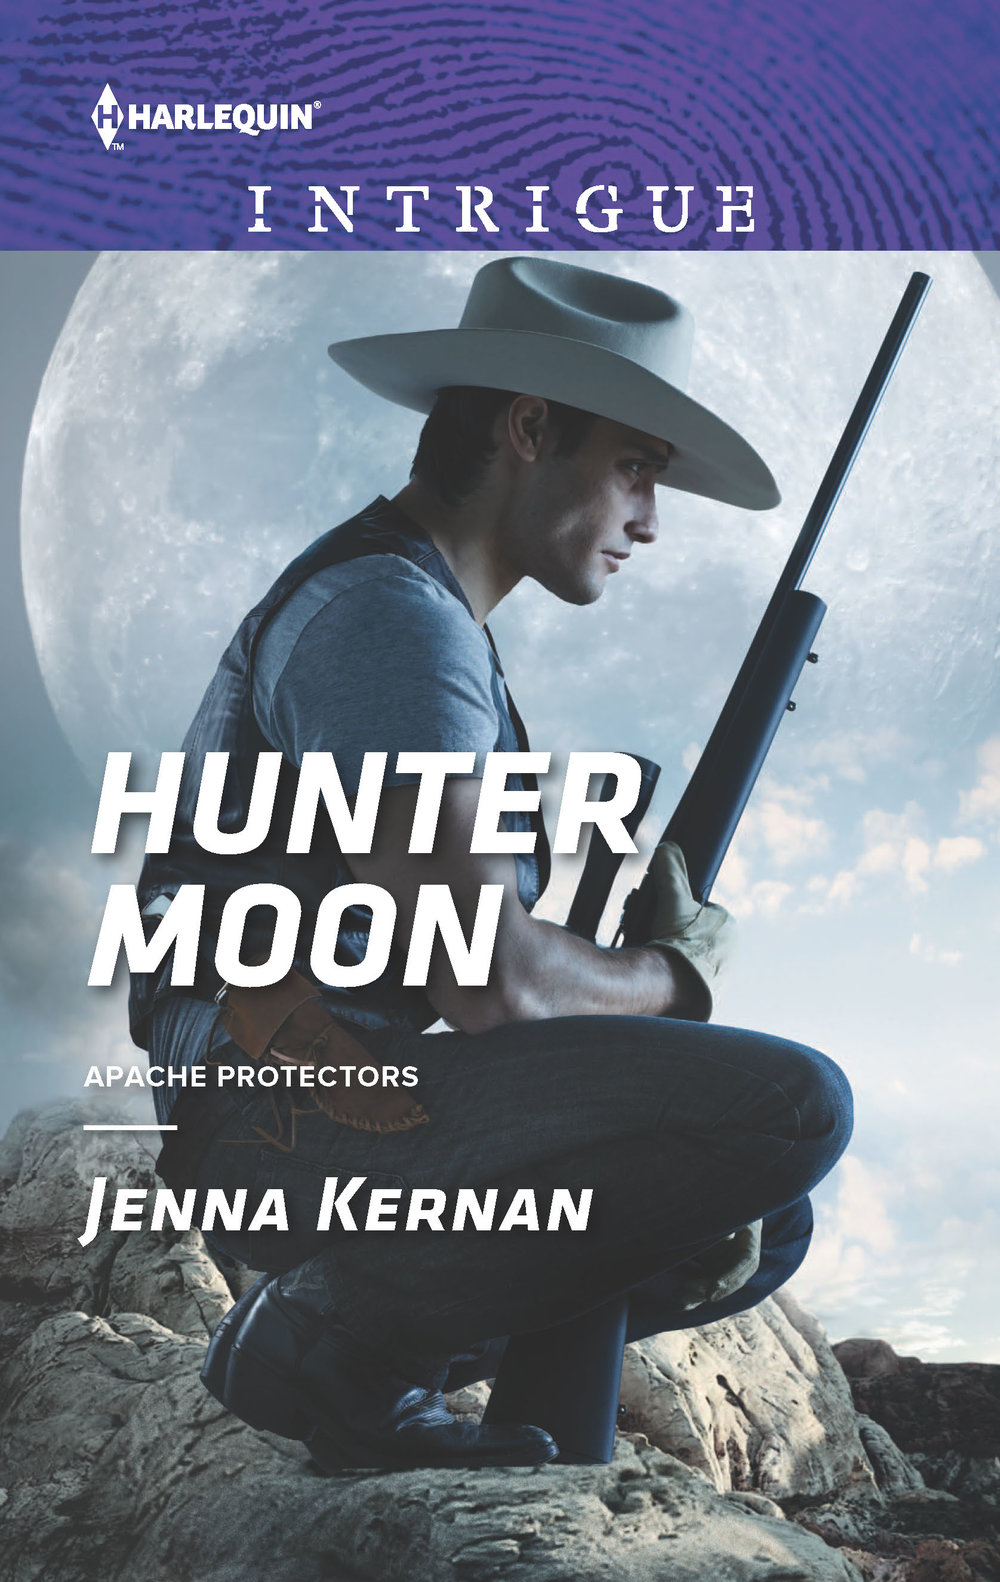 Hunter Moon by Jenna Kernan